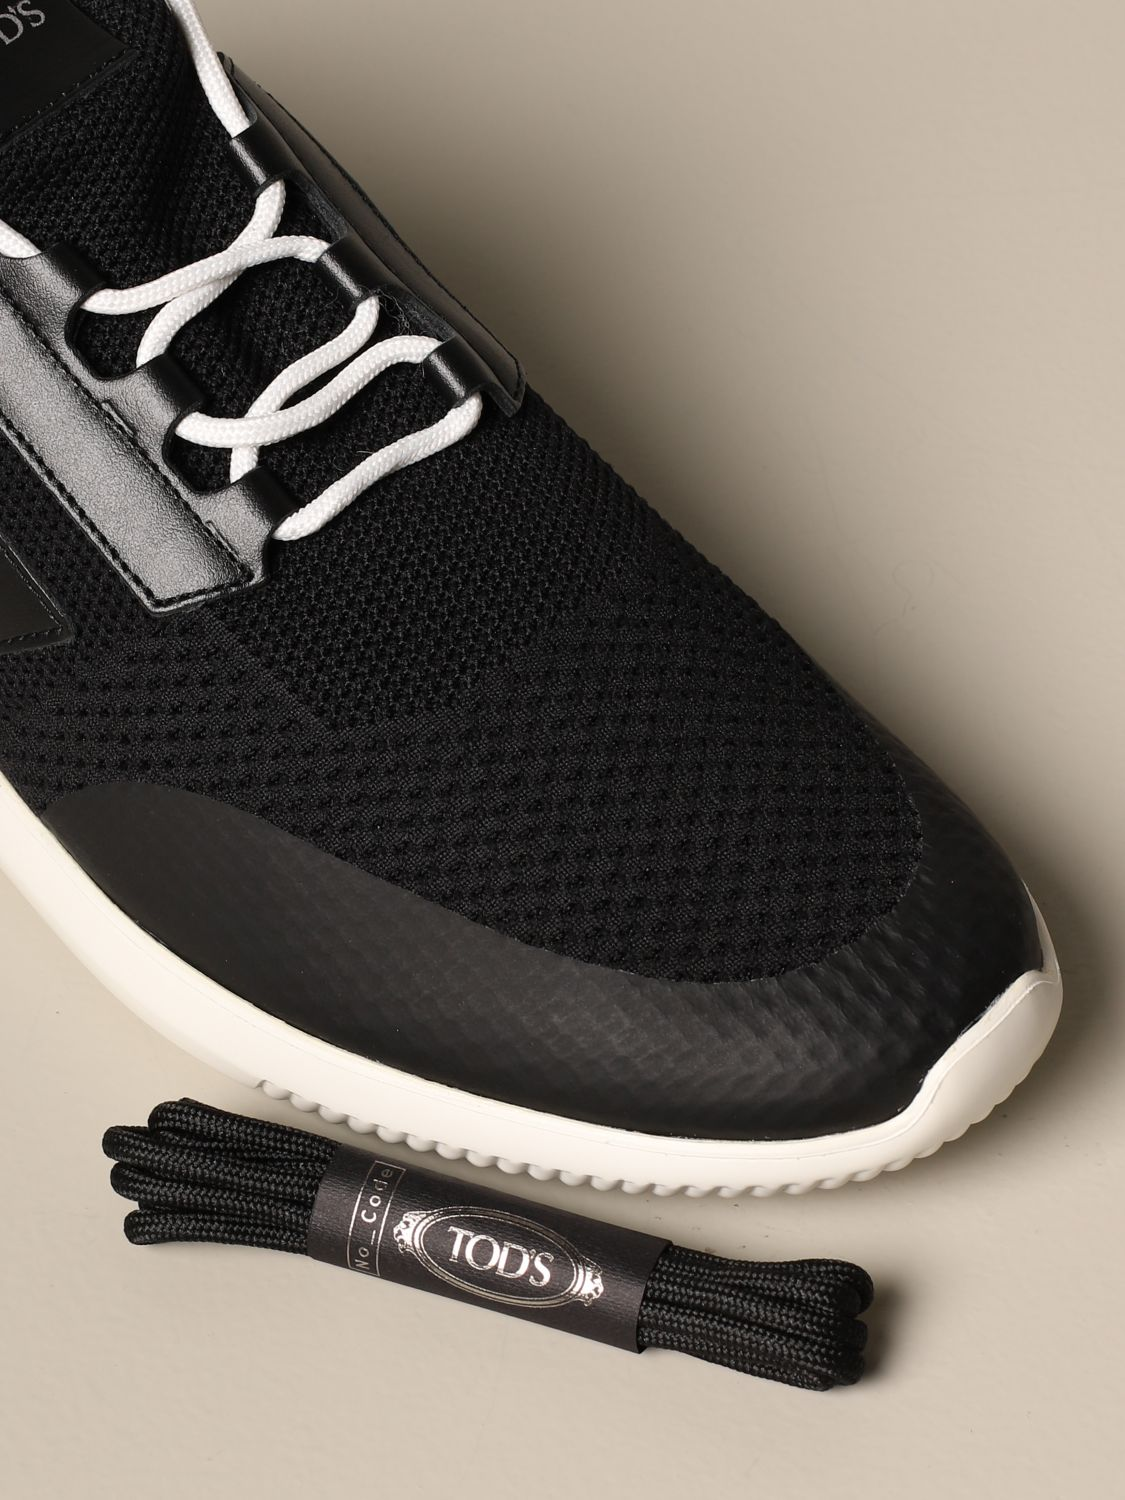 leather | Sneakers Tods Men Black